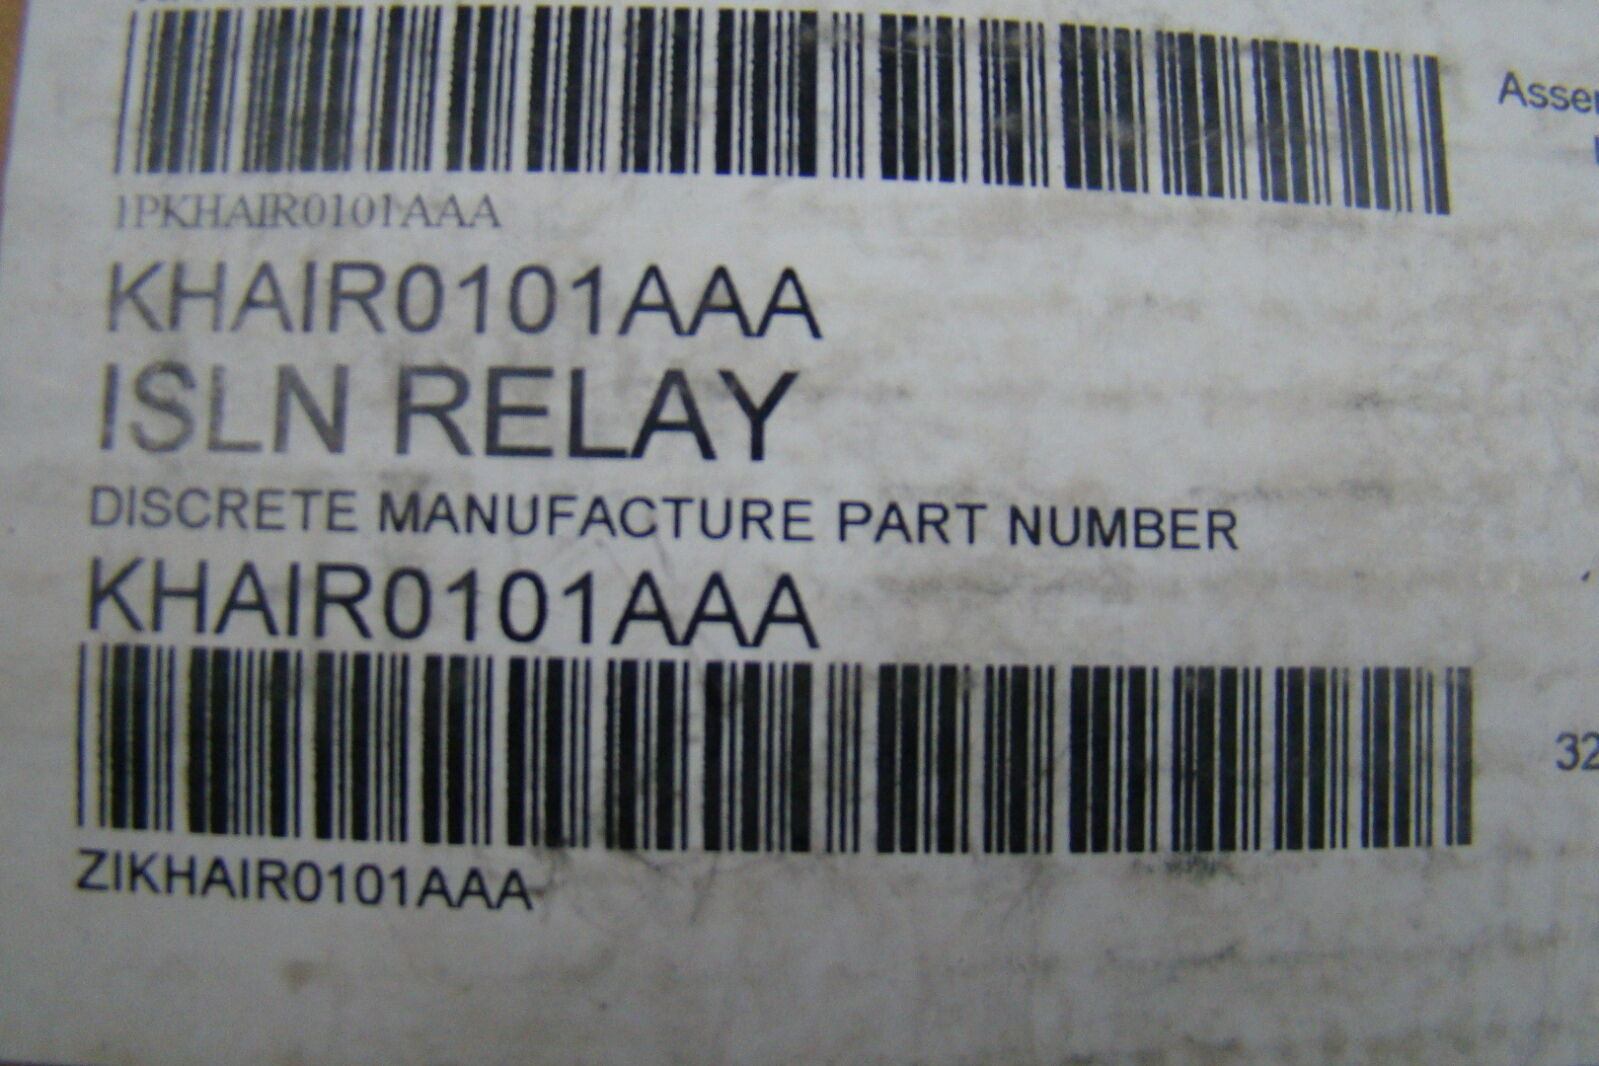 jf02628 honeywell 24v isolation relay khair0101aaa 2 honeywell 24v isolation relay khair0101aaa ebay honeywell r8222d wiring diagram at arjmand.co